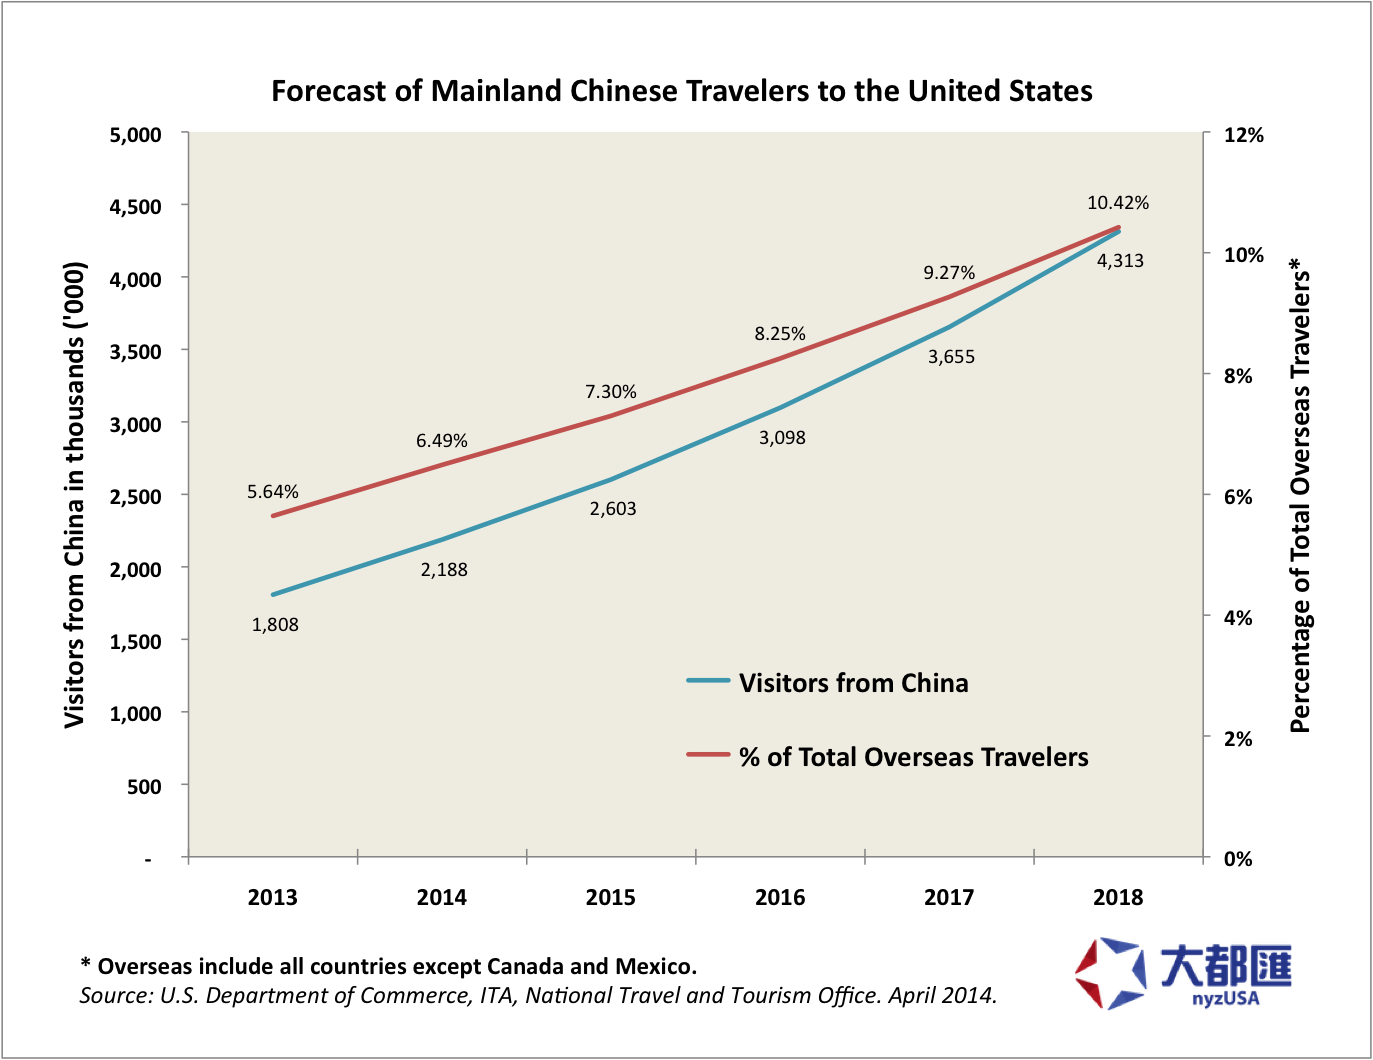 Forecast of Mainland Chinese Travelers to the United States